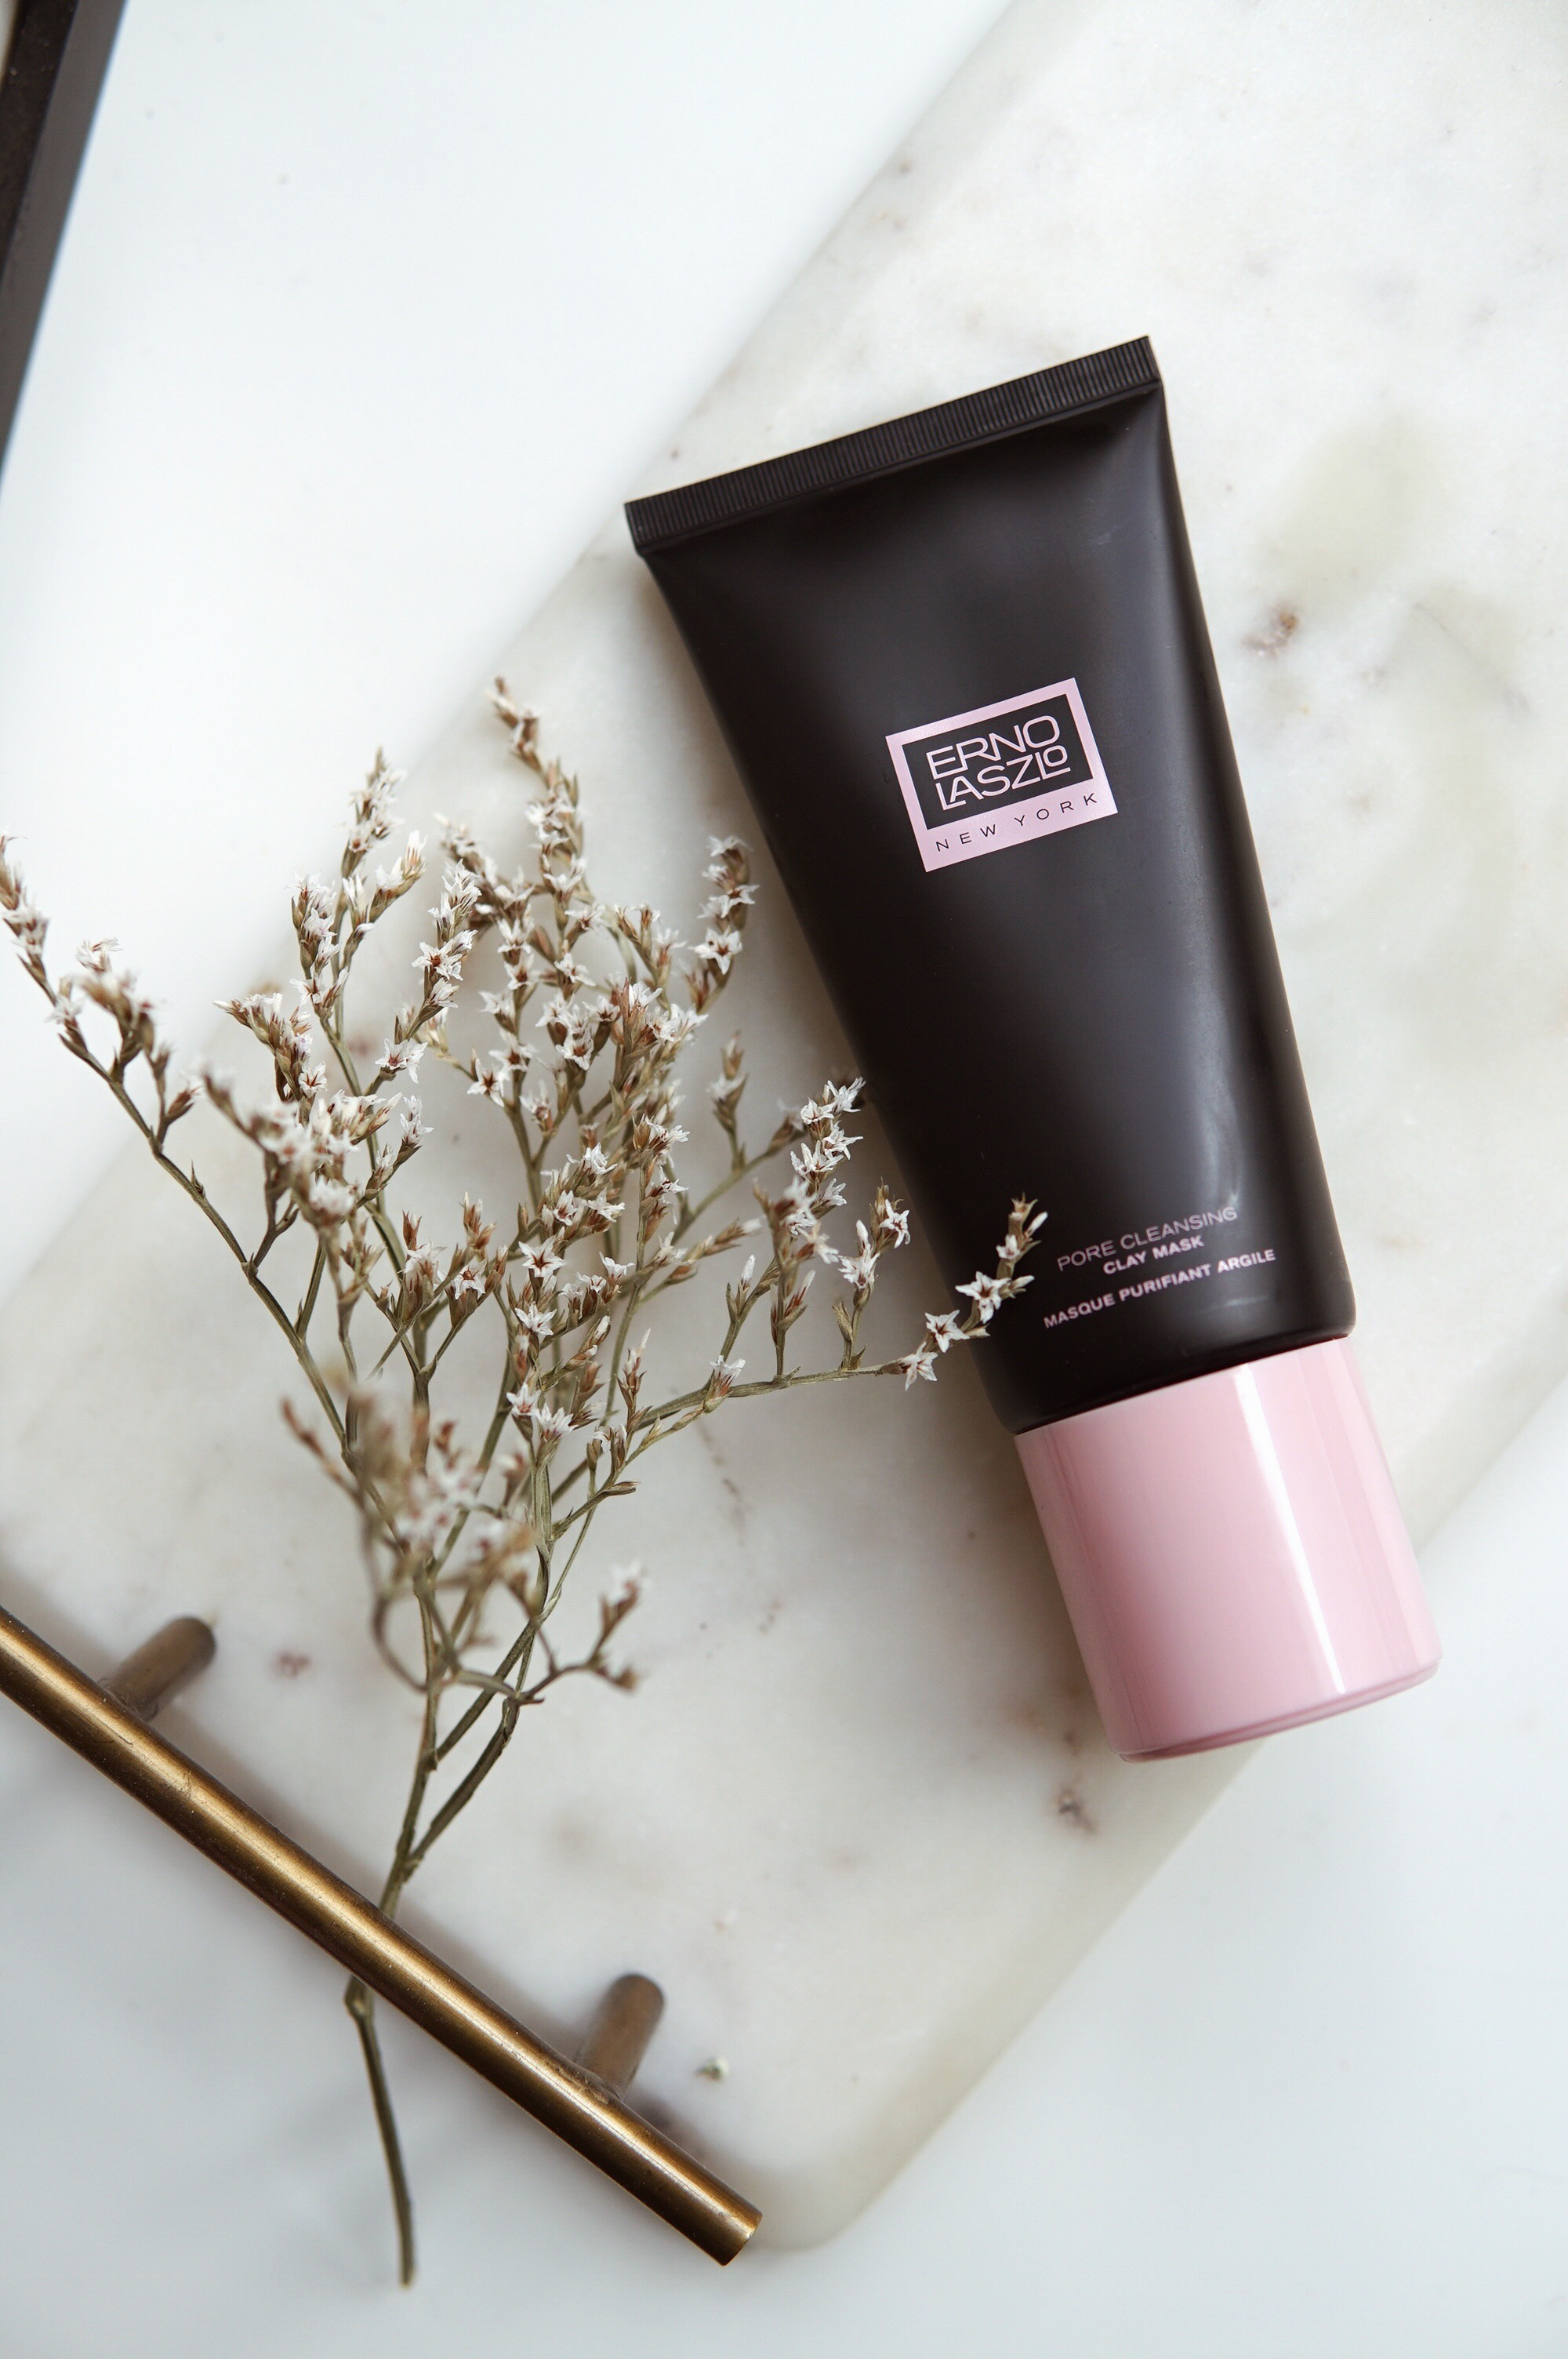 Erno Laszlo Pore Cleansing Clay Mask.JPG